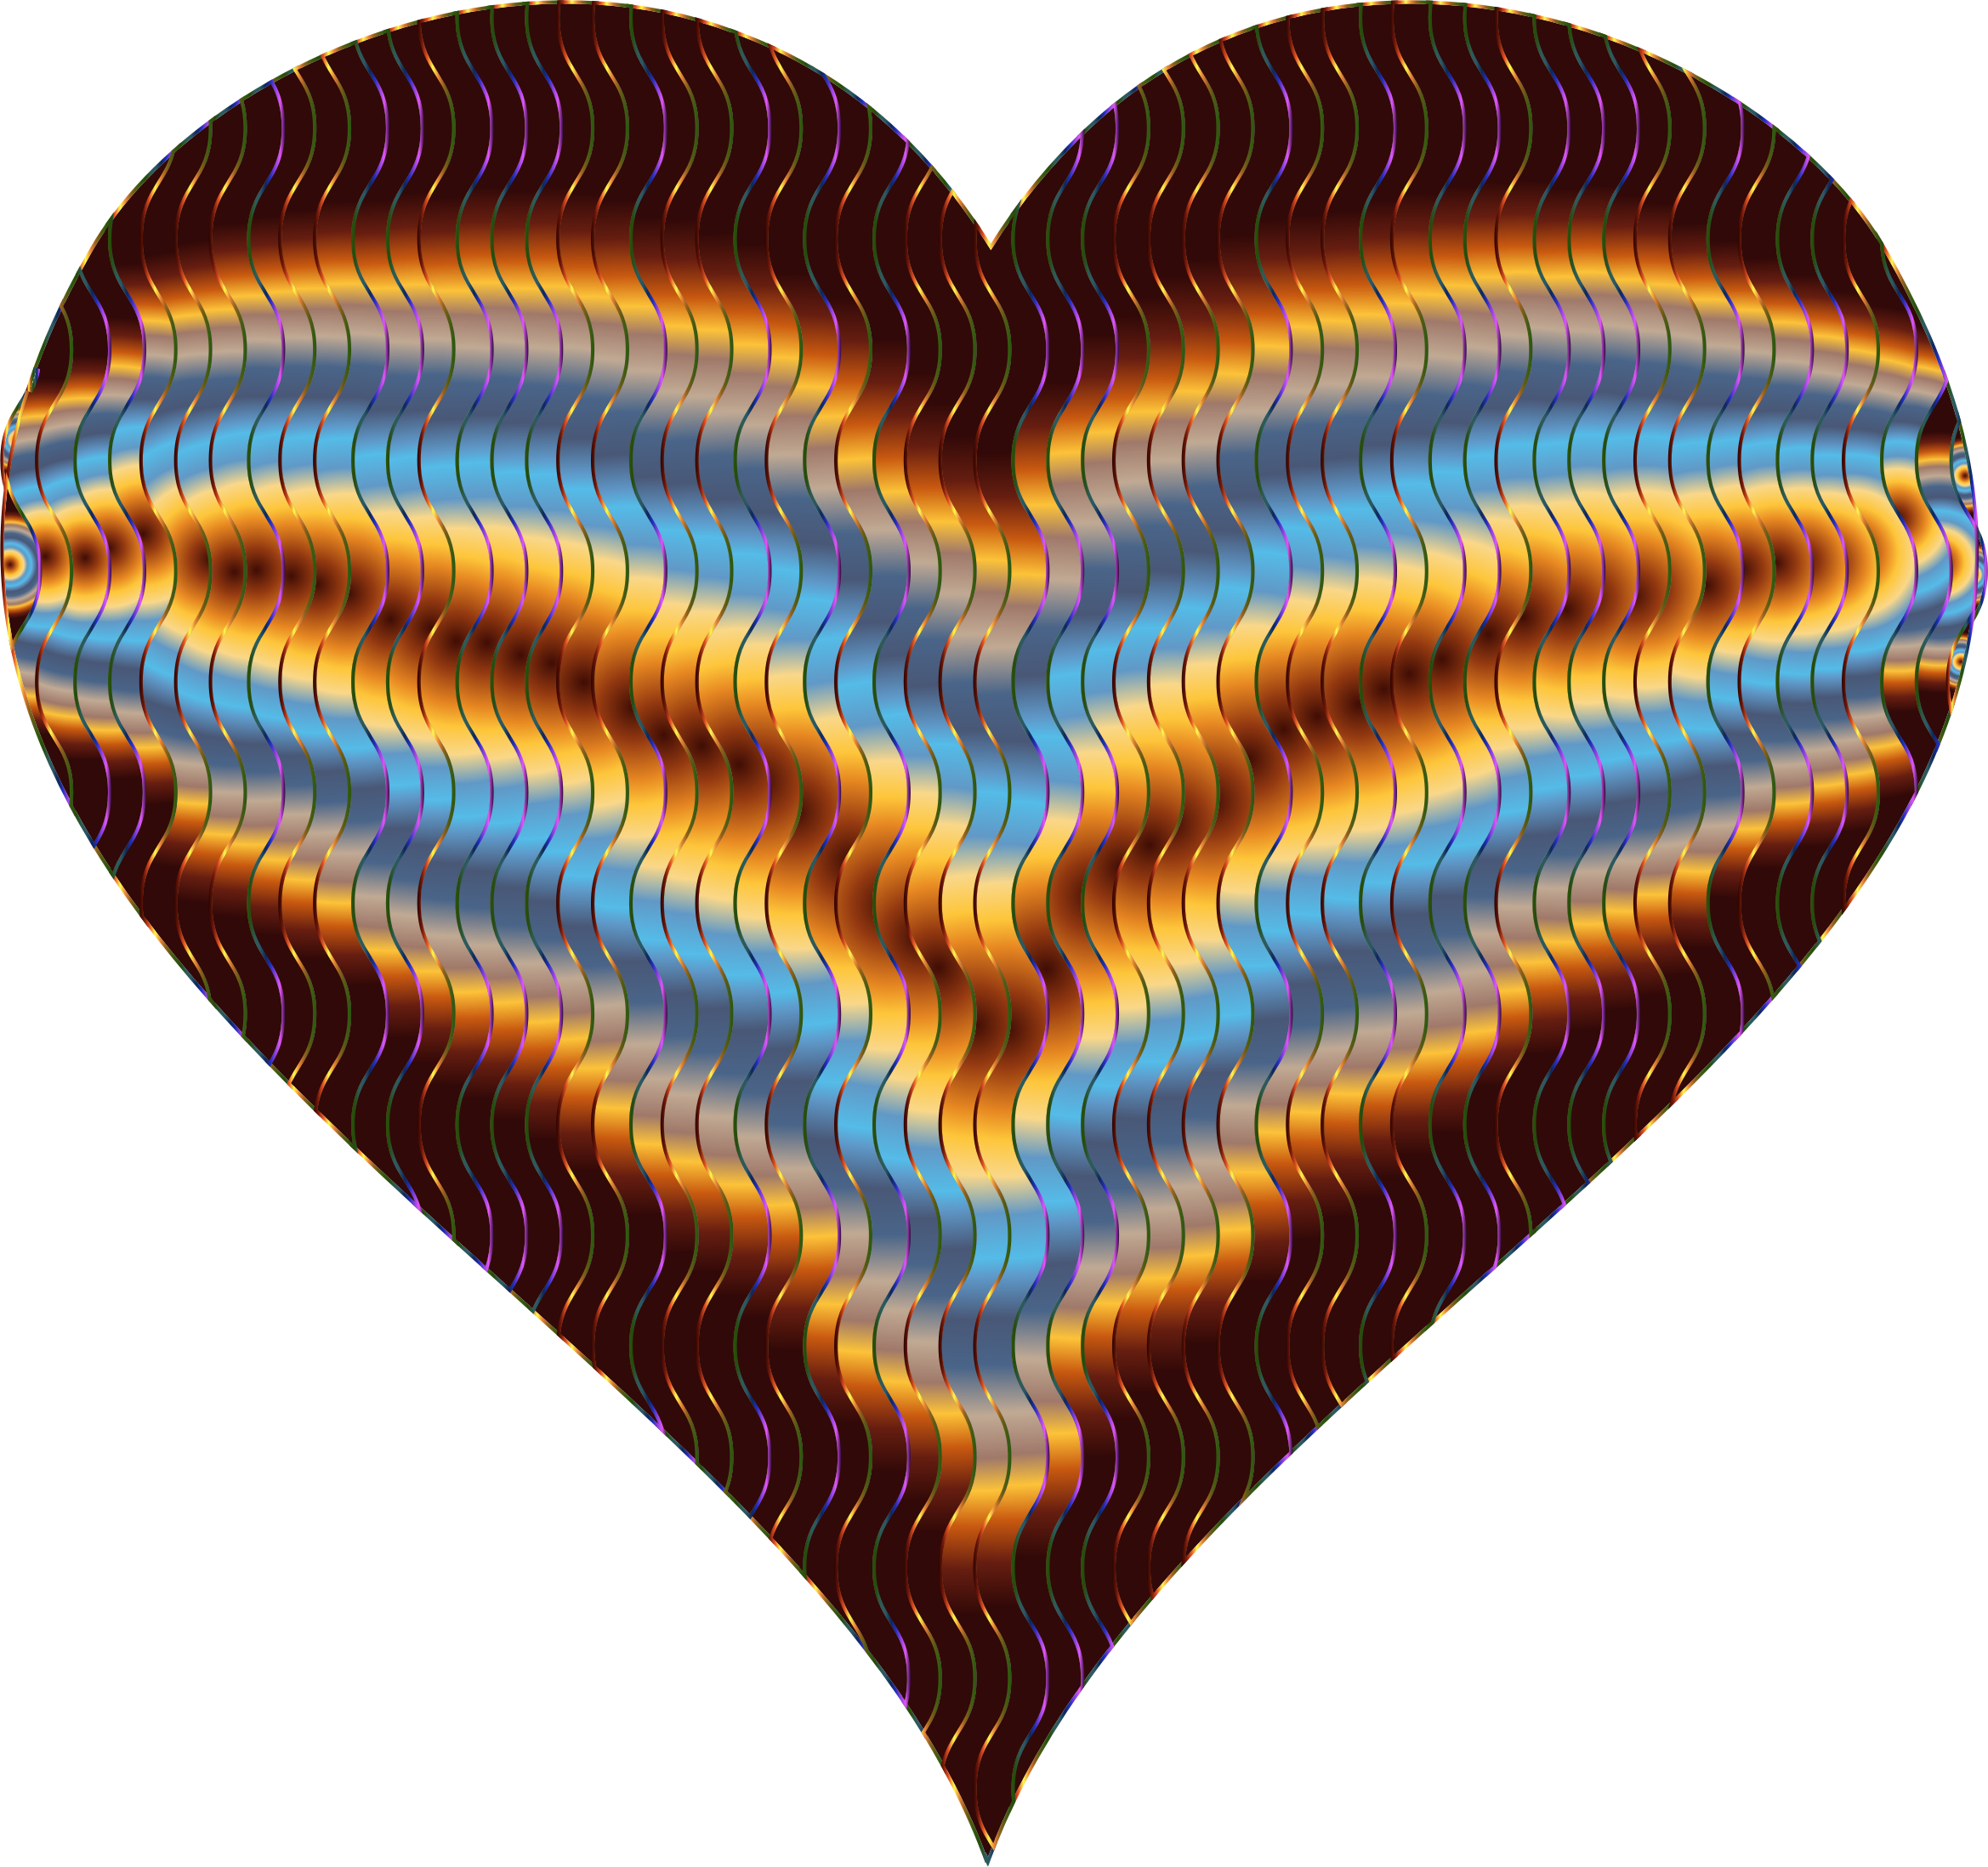 Colorful Wavy Heart 5 Variation 4 by GDJ